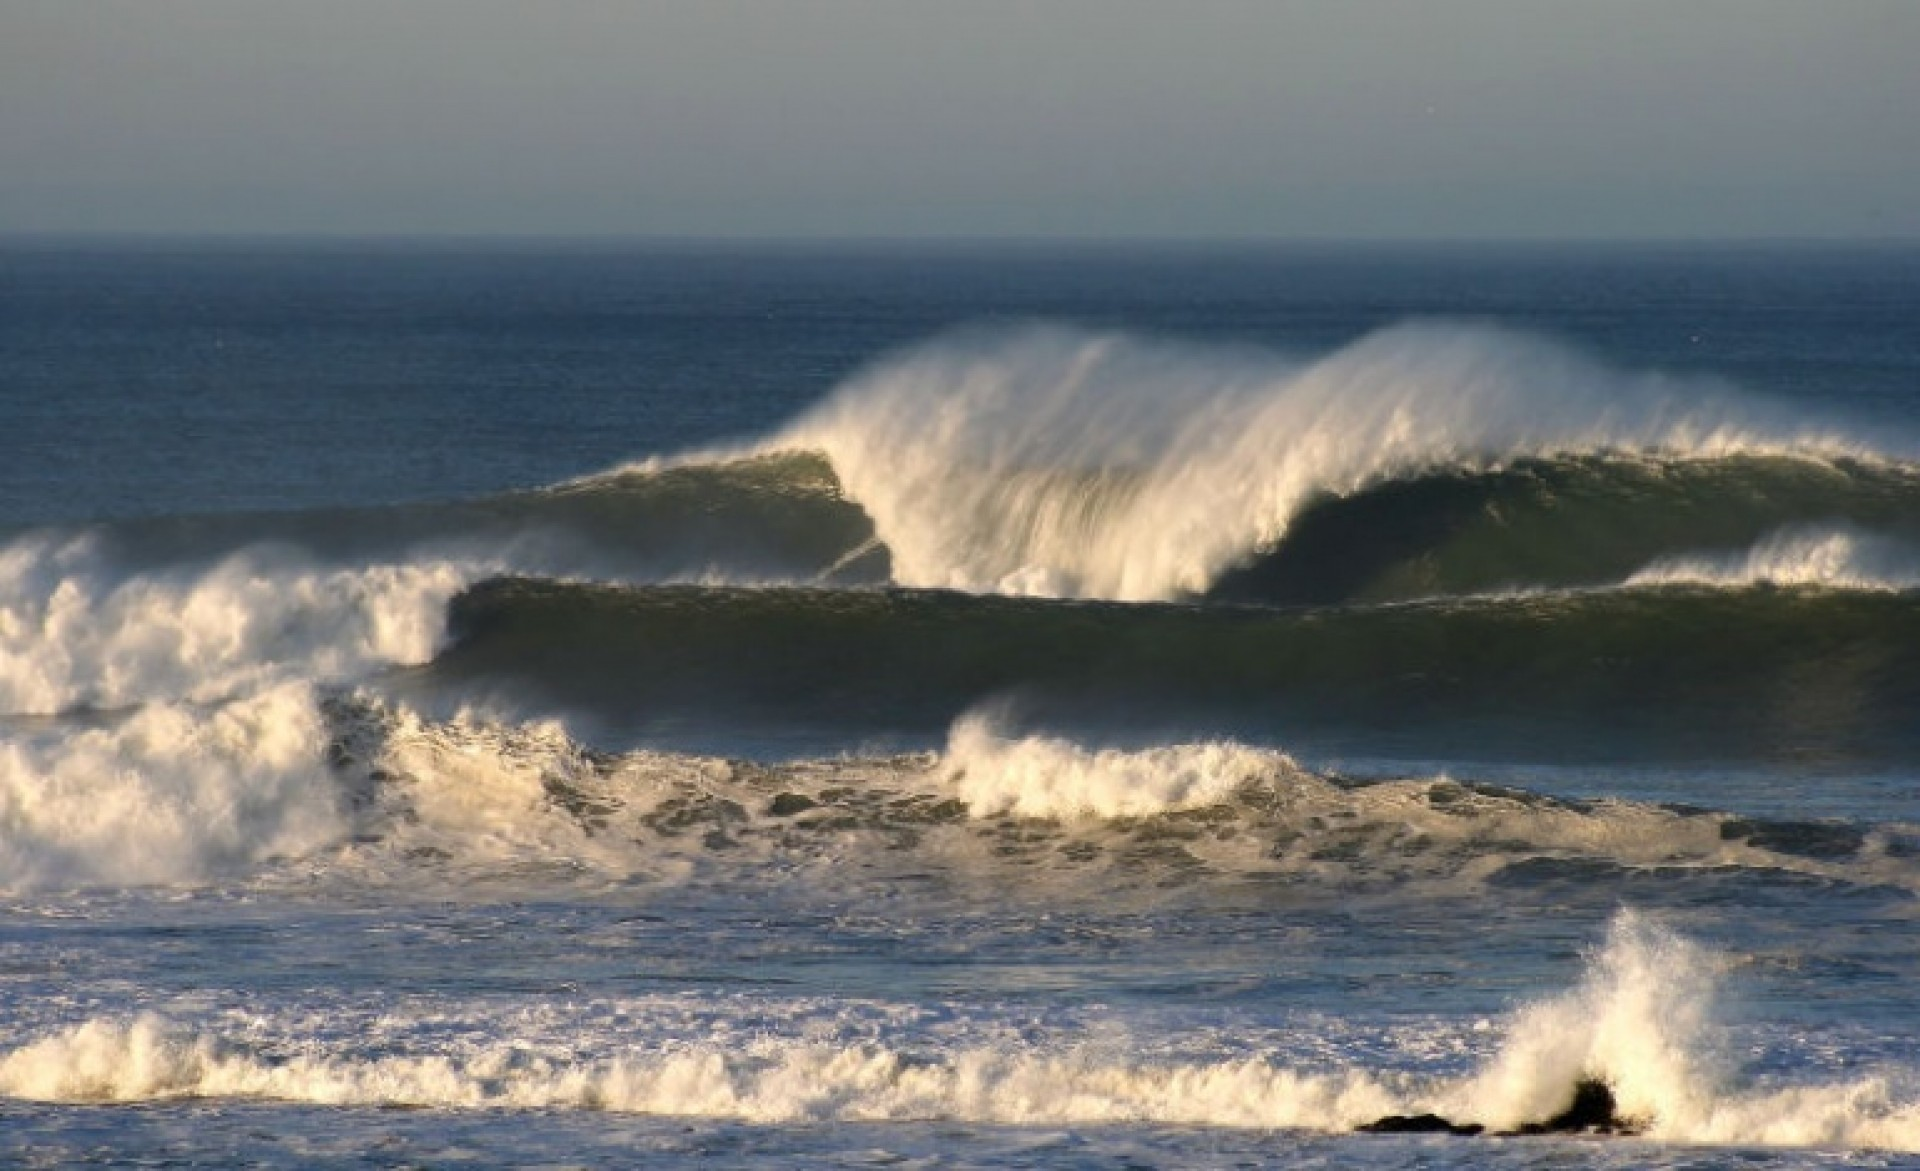 belowNEPTUNE's photo of Mavericks (Half Moon Bay)